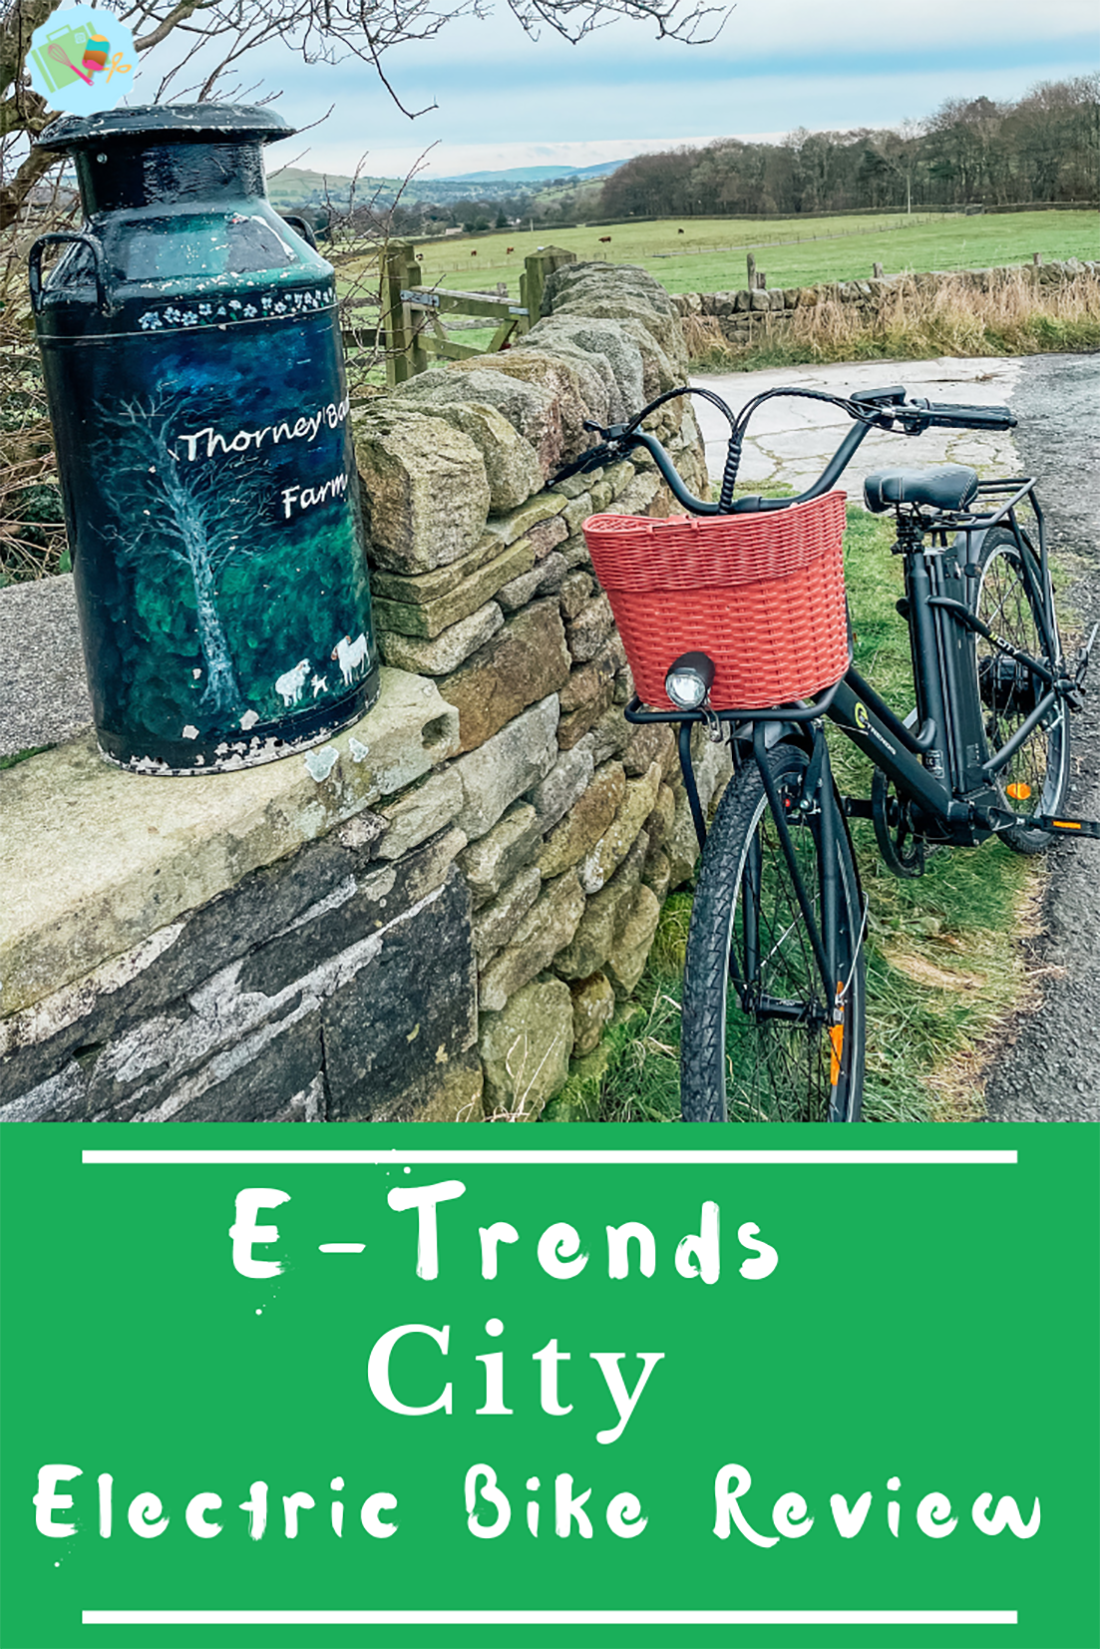 Review of the E-Trends Electric Bike